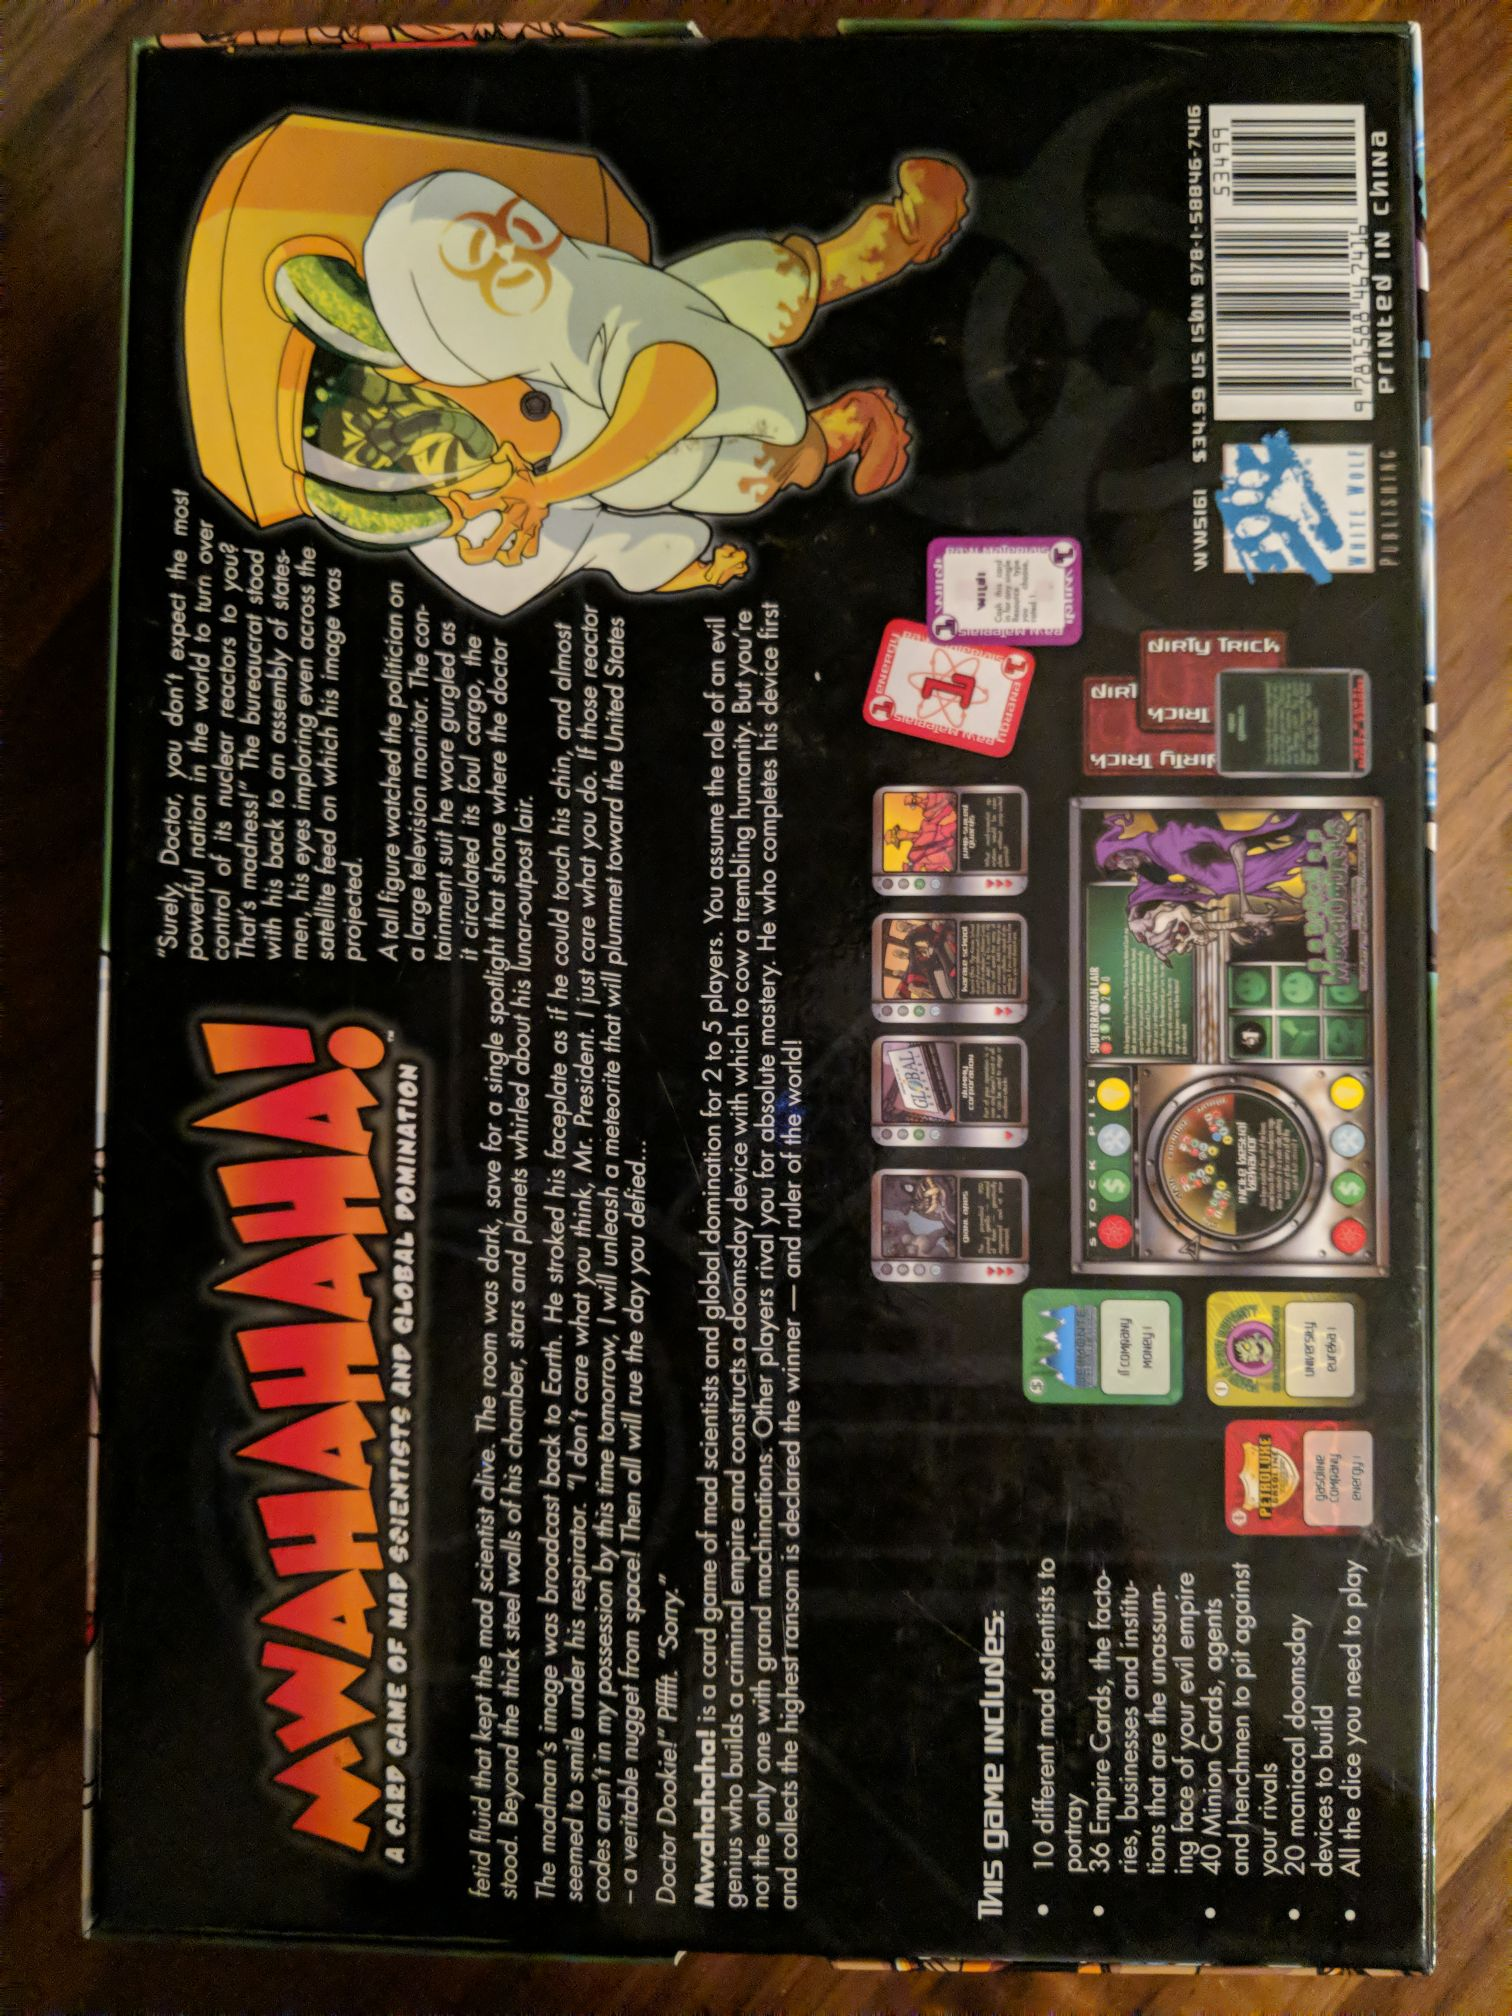 Mwahahaha Board Game - White Wolf Publishing (Card Game) back image (back cover, second image)